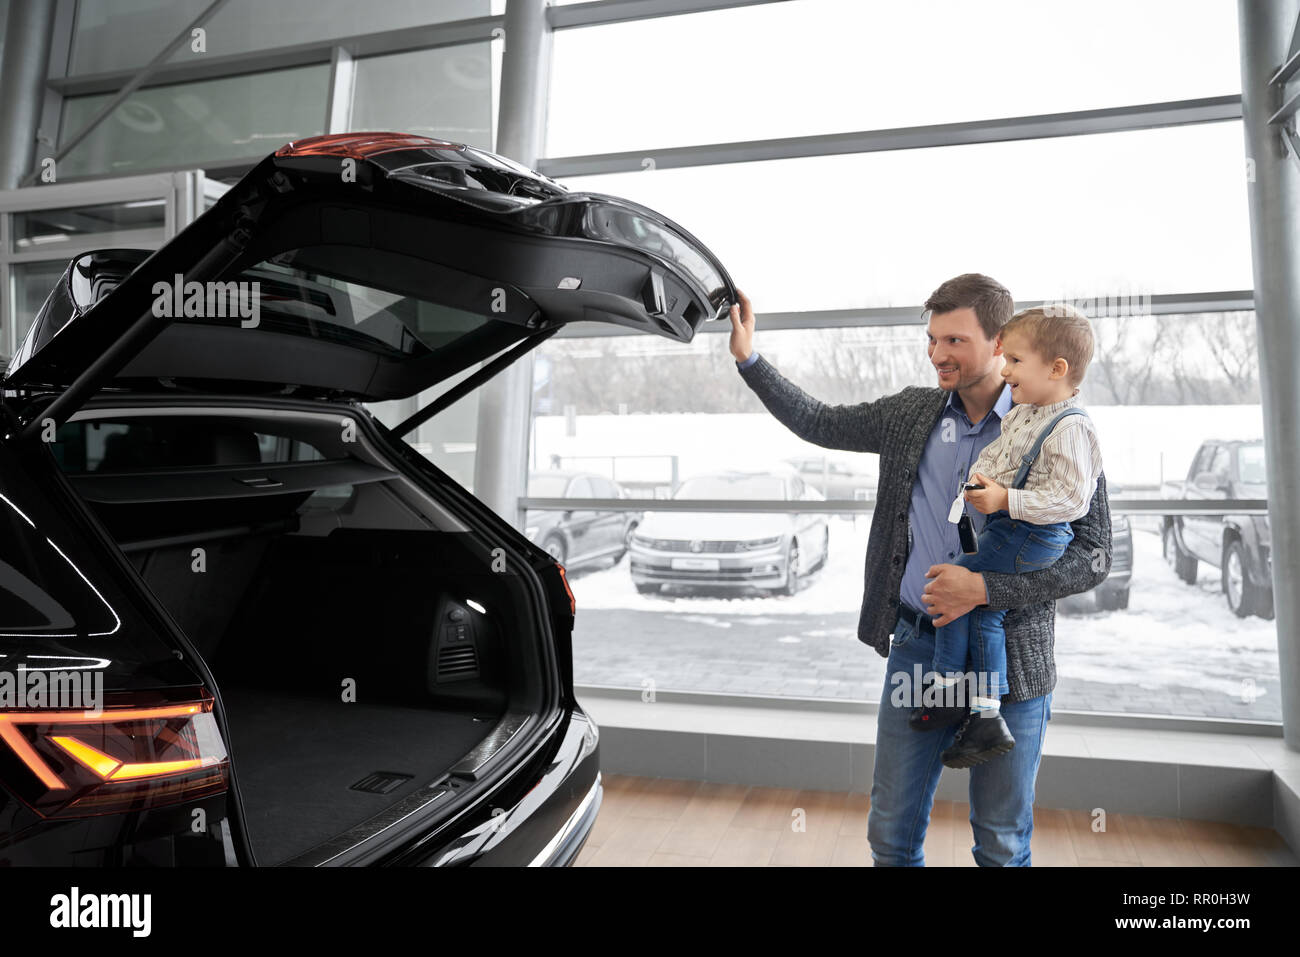 Cheerful father holding kid on hand, showing to son new black car. Handsome man opening empty car trunk of expensive black automobile. Parent and child smiling, looking at car. - Stock Image